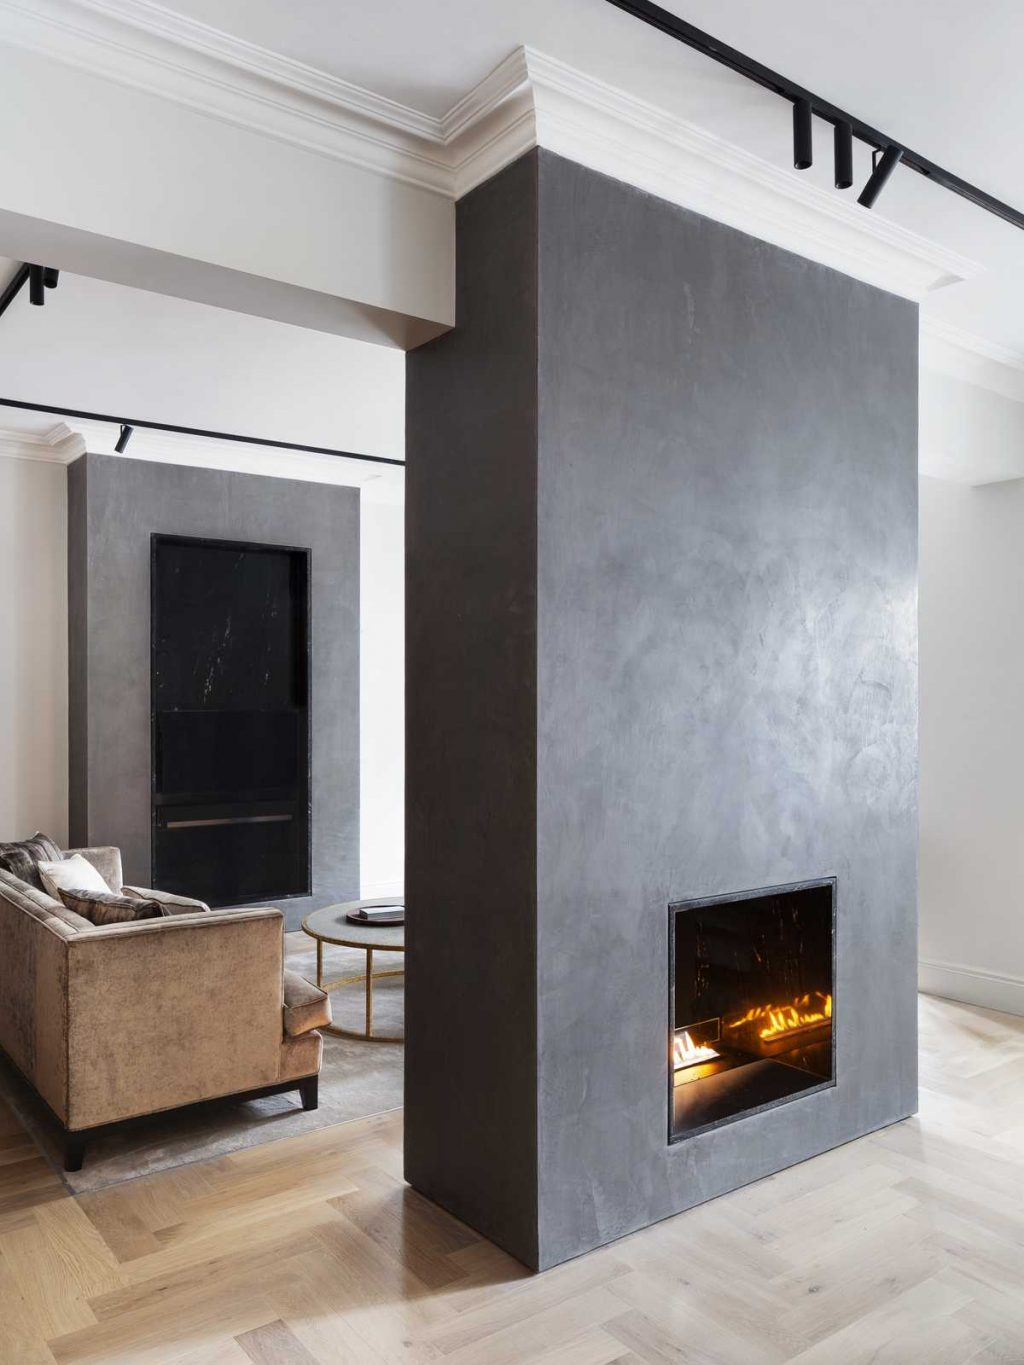 A Renovation Of a Flat in Edwardian mansion block